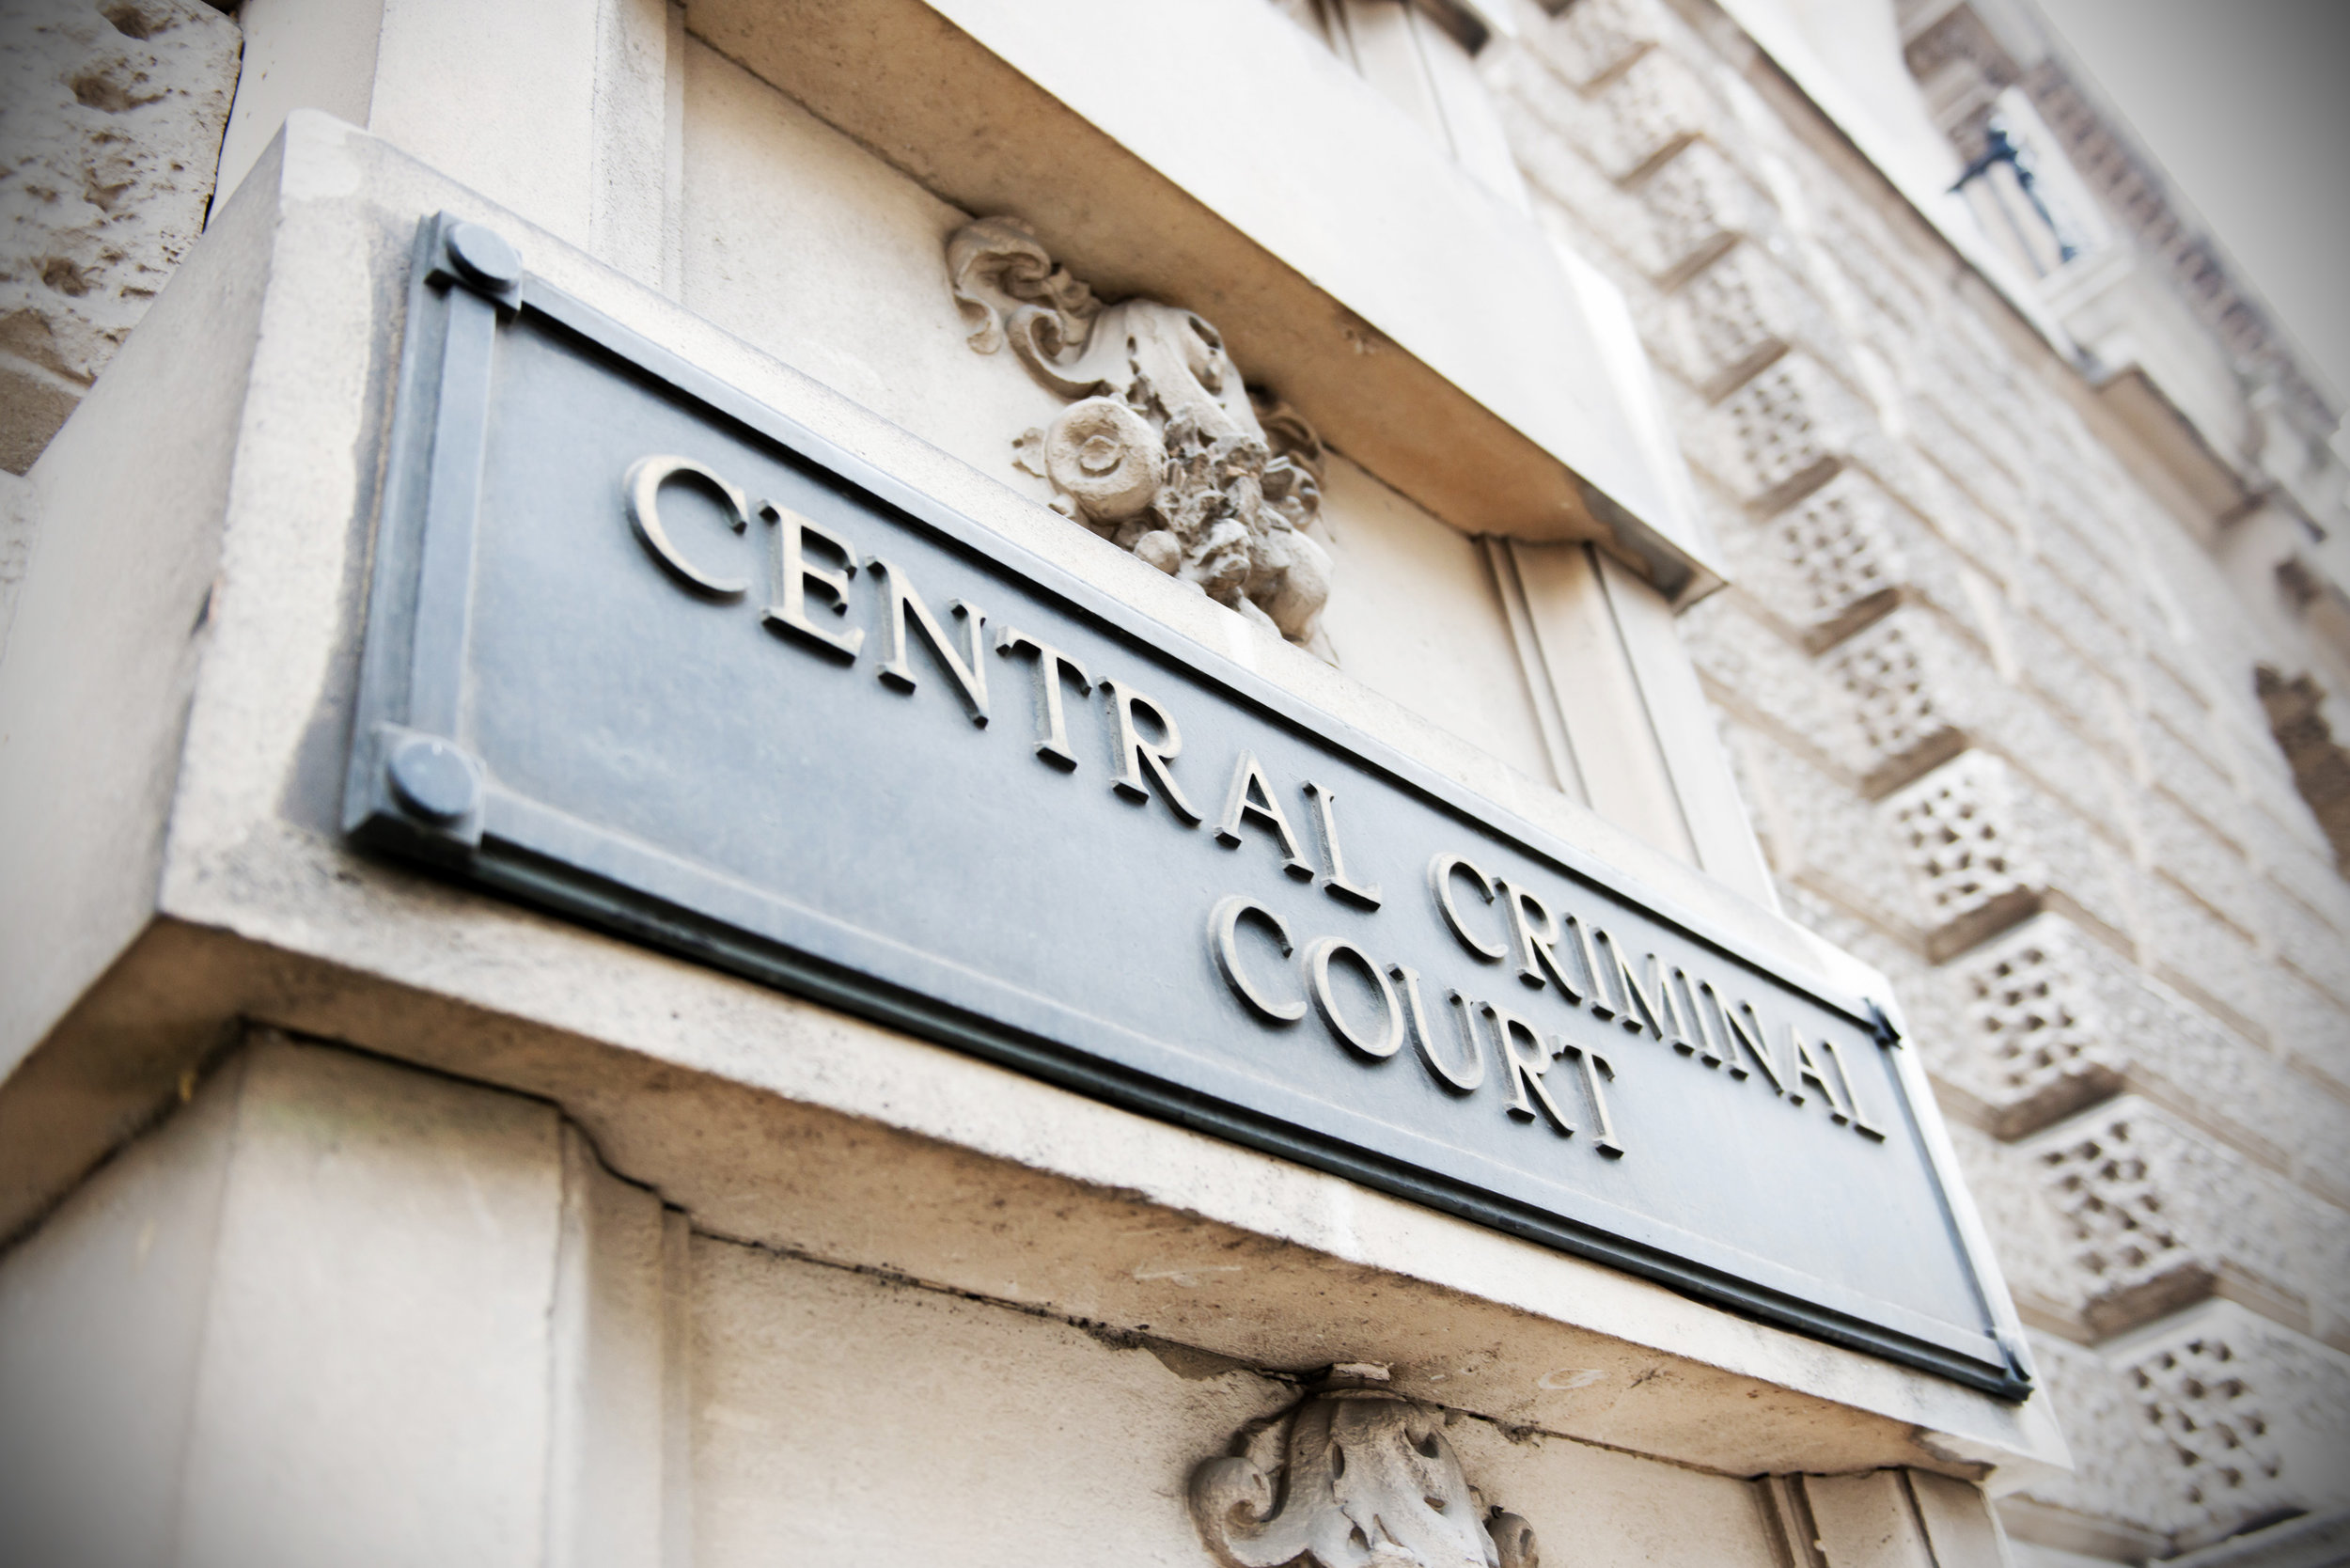 Vulnerable witnesses - In mid-2016, the Bar Council assumed responsibility for coordinating the delivery of specialist training for criminal advocates dealing with vulnerable witnesses.Continue reading . . .